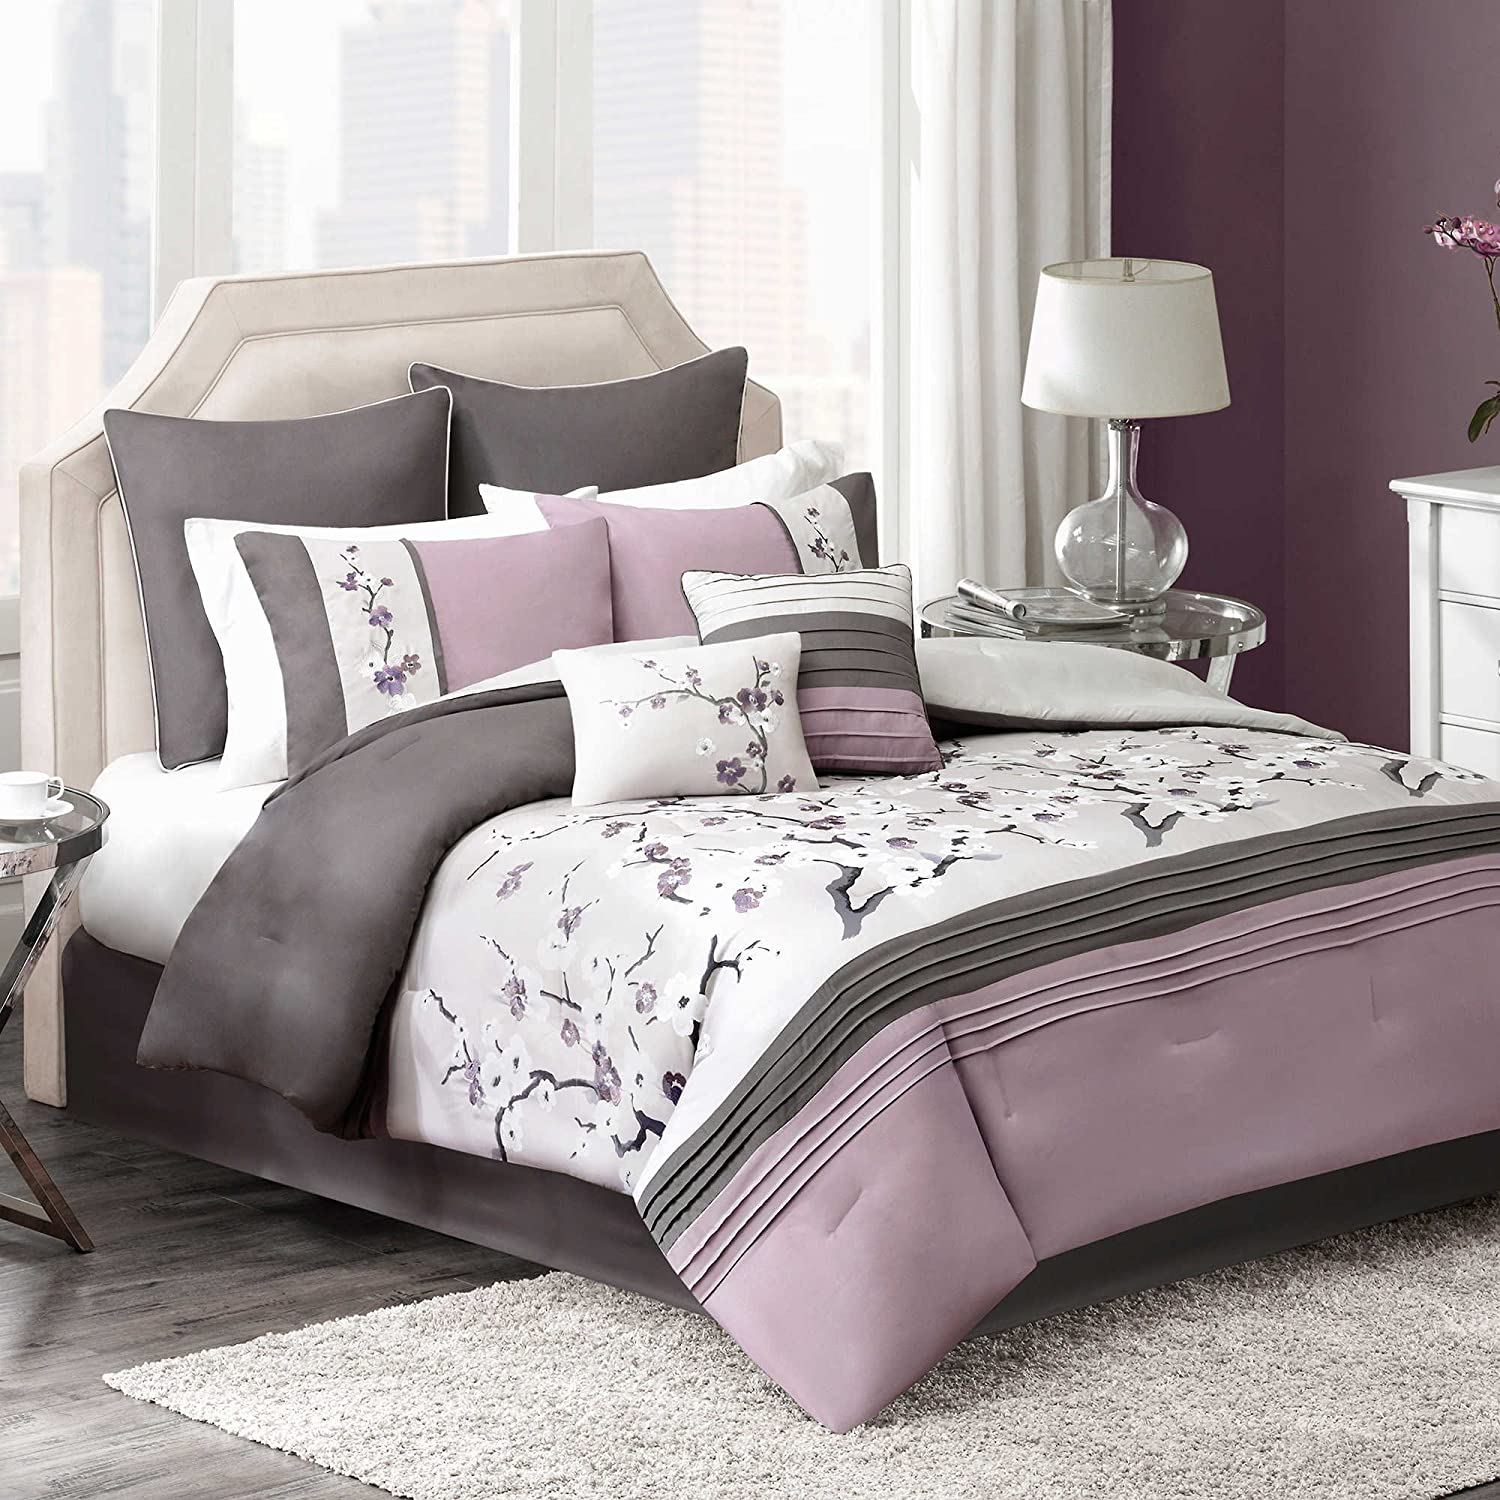 bedroom full mattress set bedding bed comforter a sets comforters king unsurpassed in size